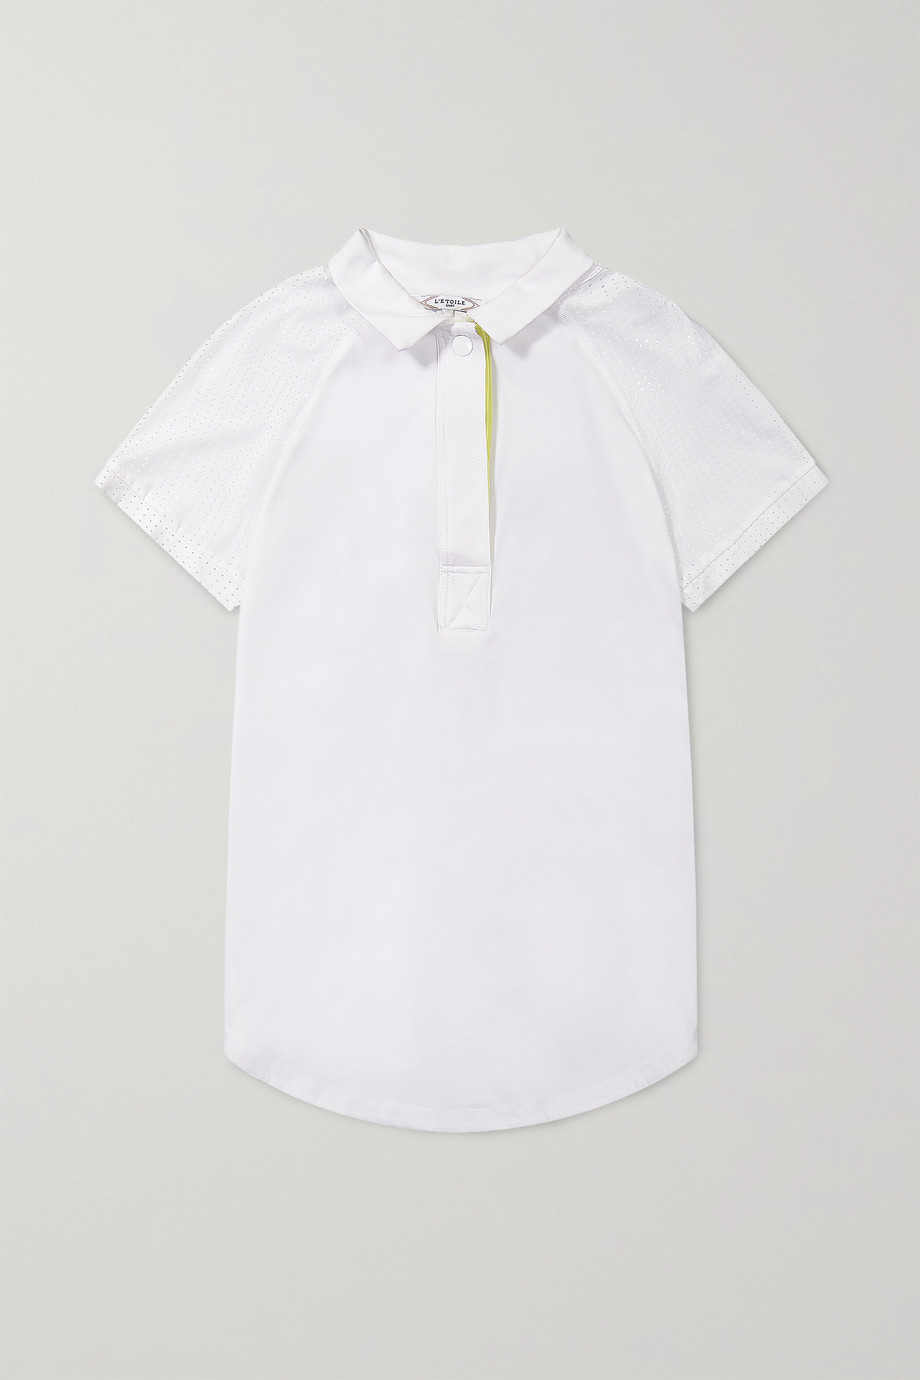 L'Etoile Sport Breezy mesh-trimmed stretch-jersey polo shirt